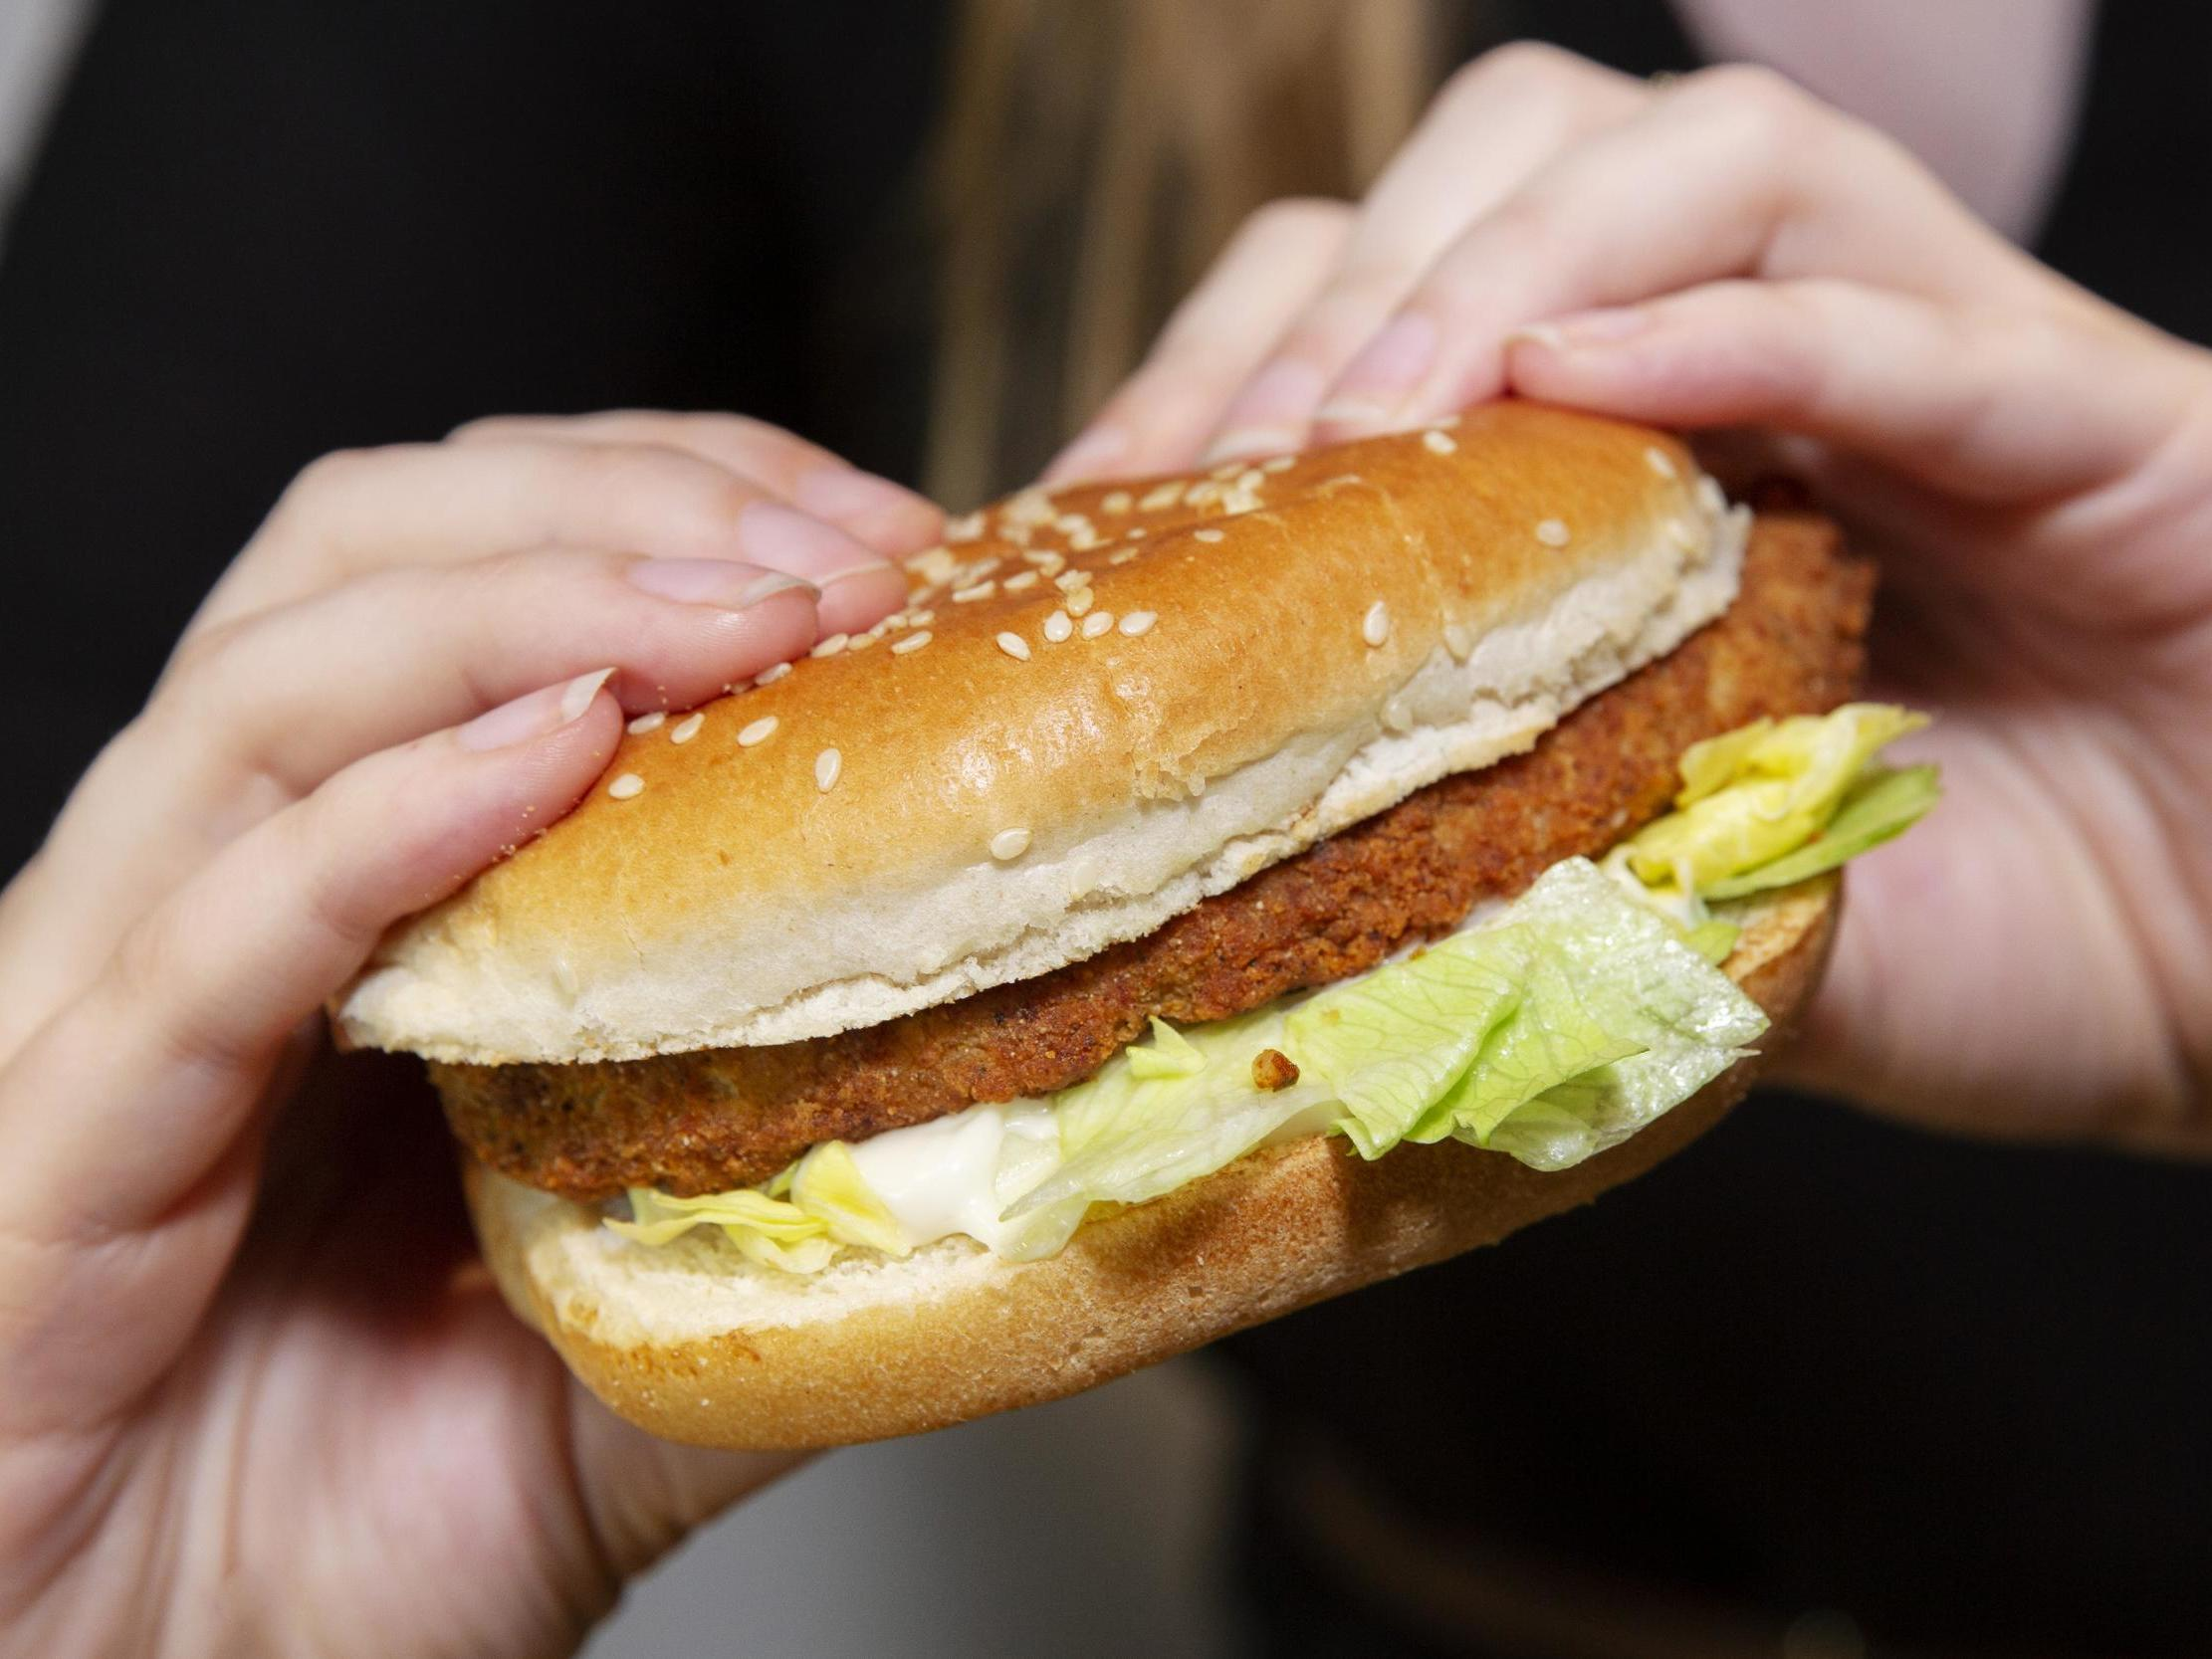 Kfc Vegan Burger To Be Launched In Uk Under Trial Scheme